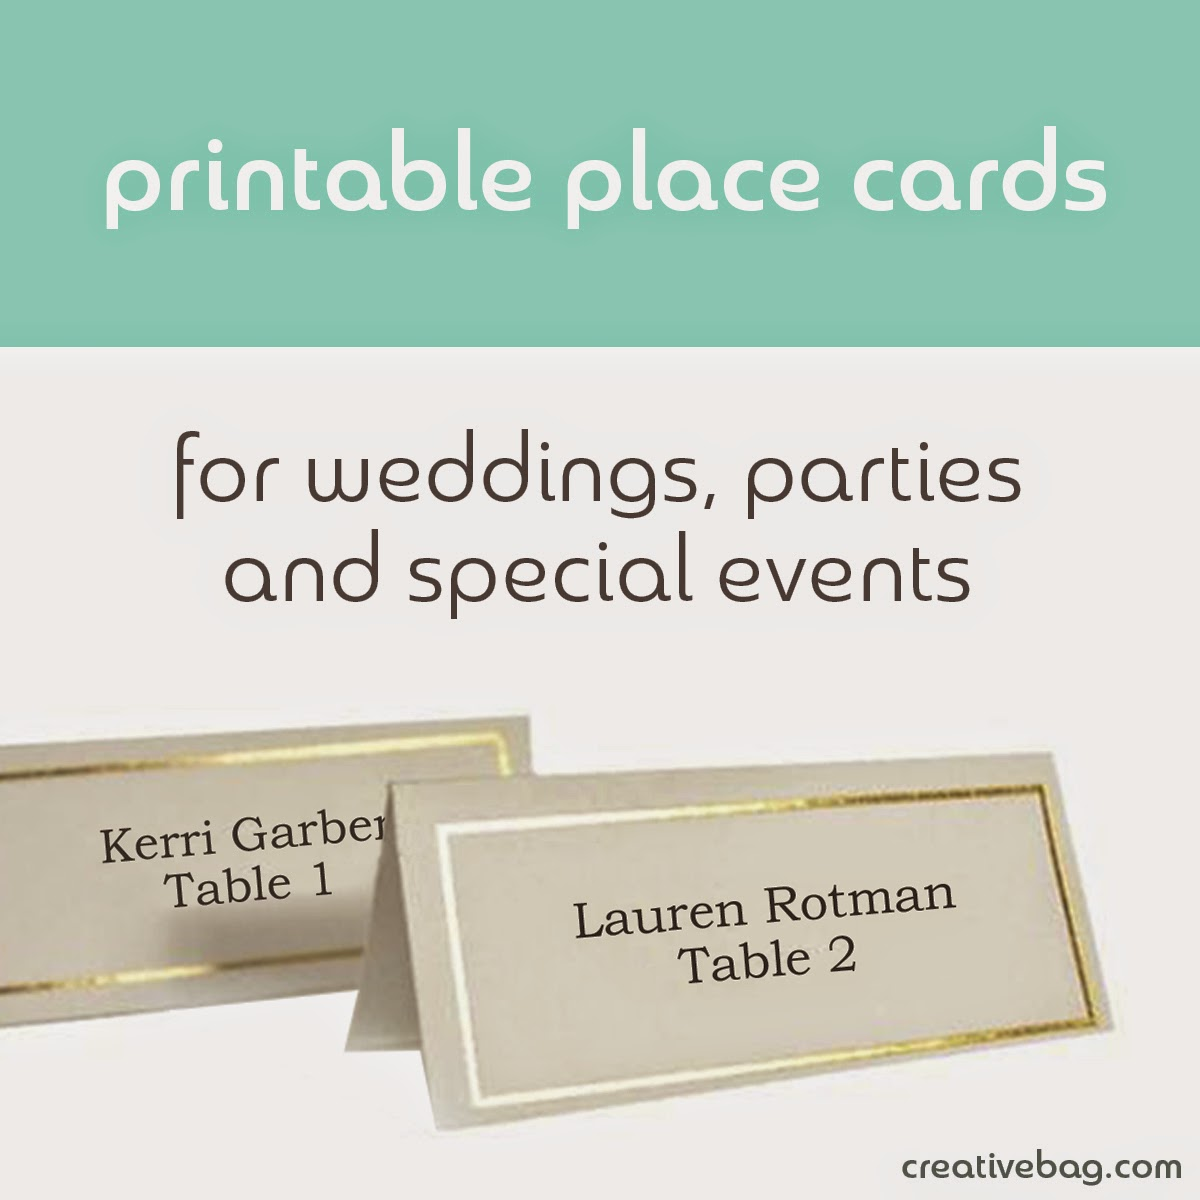 printable place cards | Creative Bag